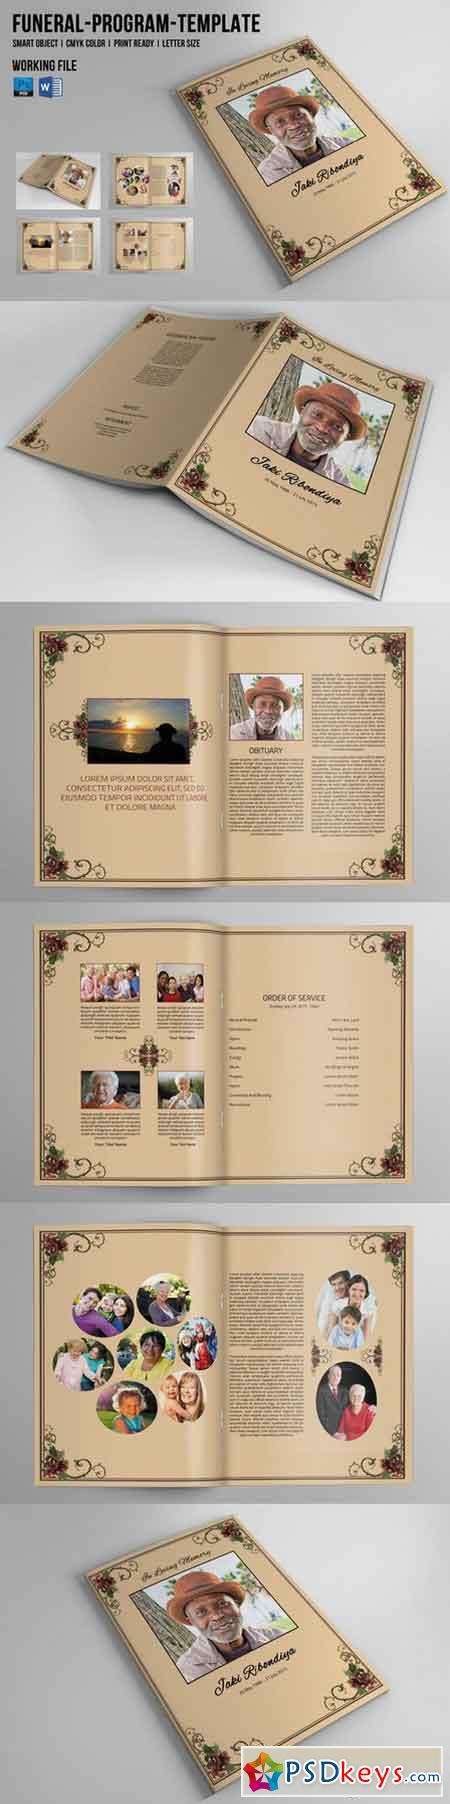 Page Funeral Booklet TemplateV Free Download - 8 page brochure template